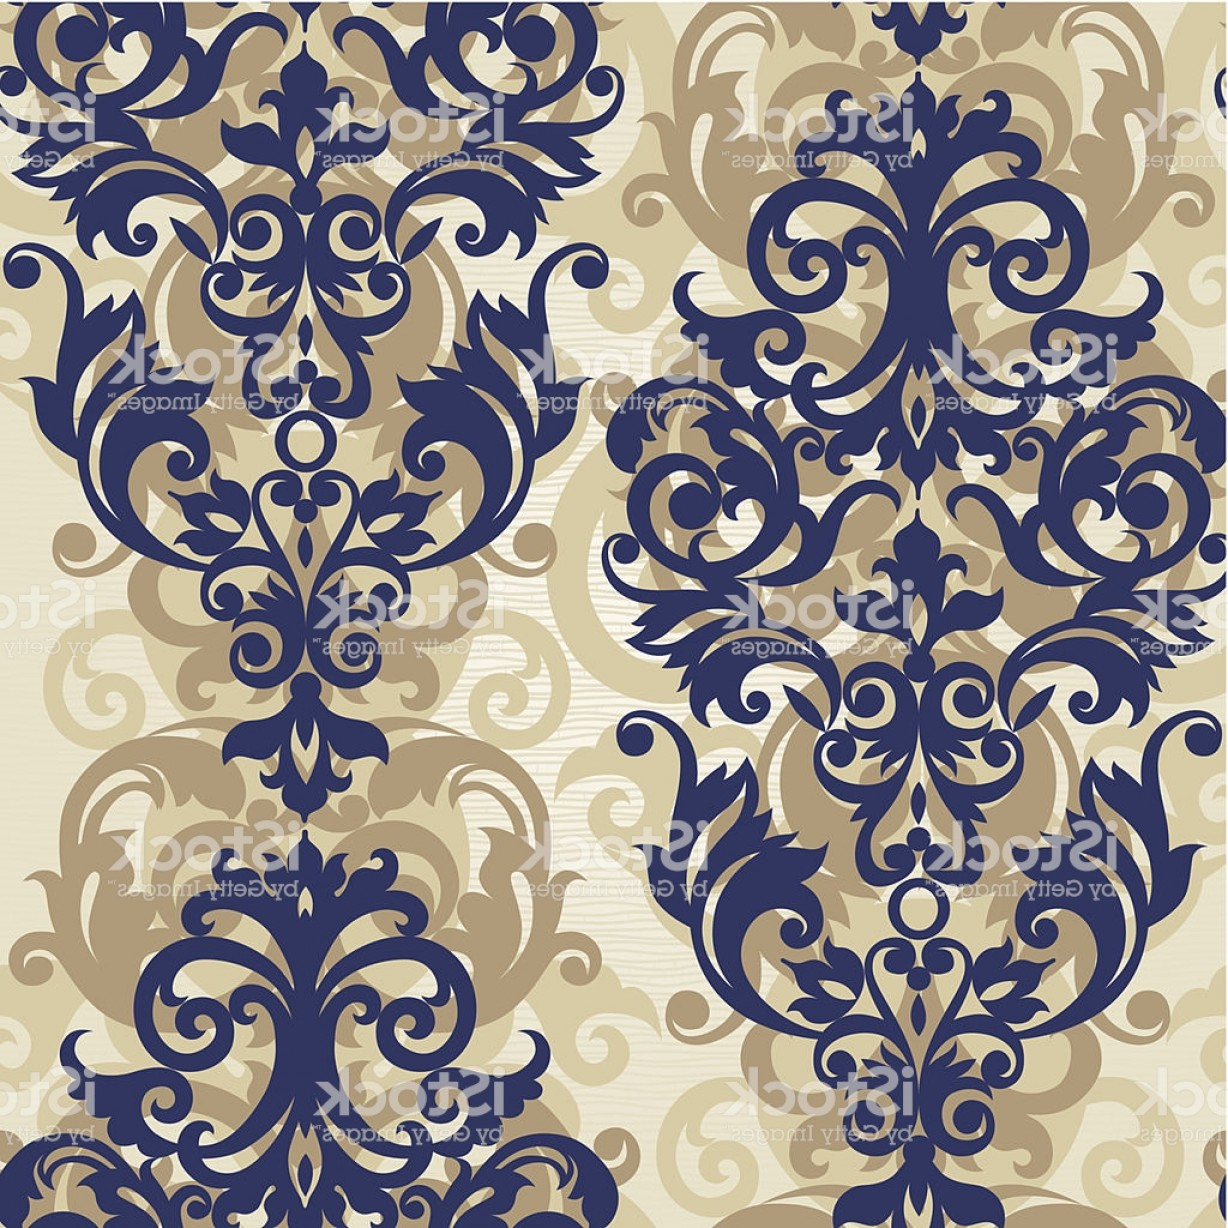 Victorian Motif Vector: Vector Seamless Pattern With Floral Motifs In Victorian Style Gm